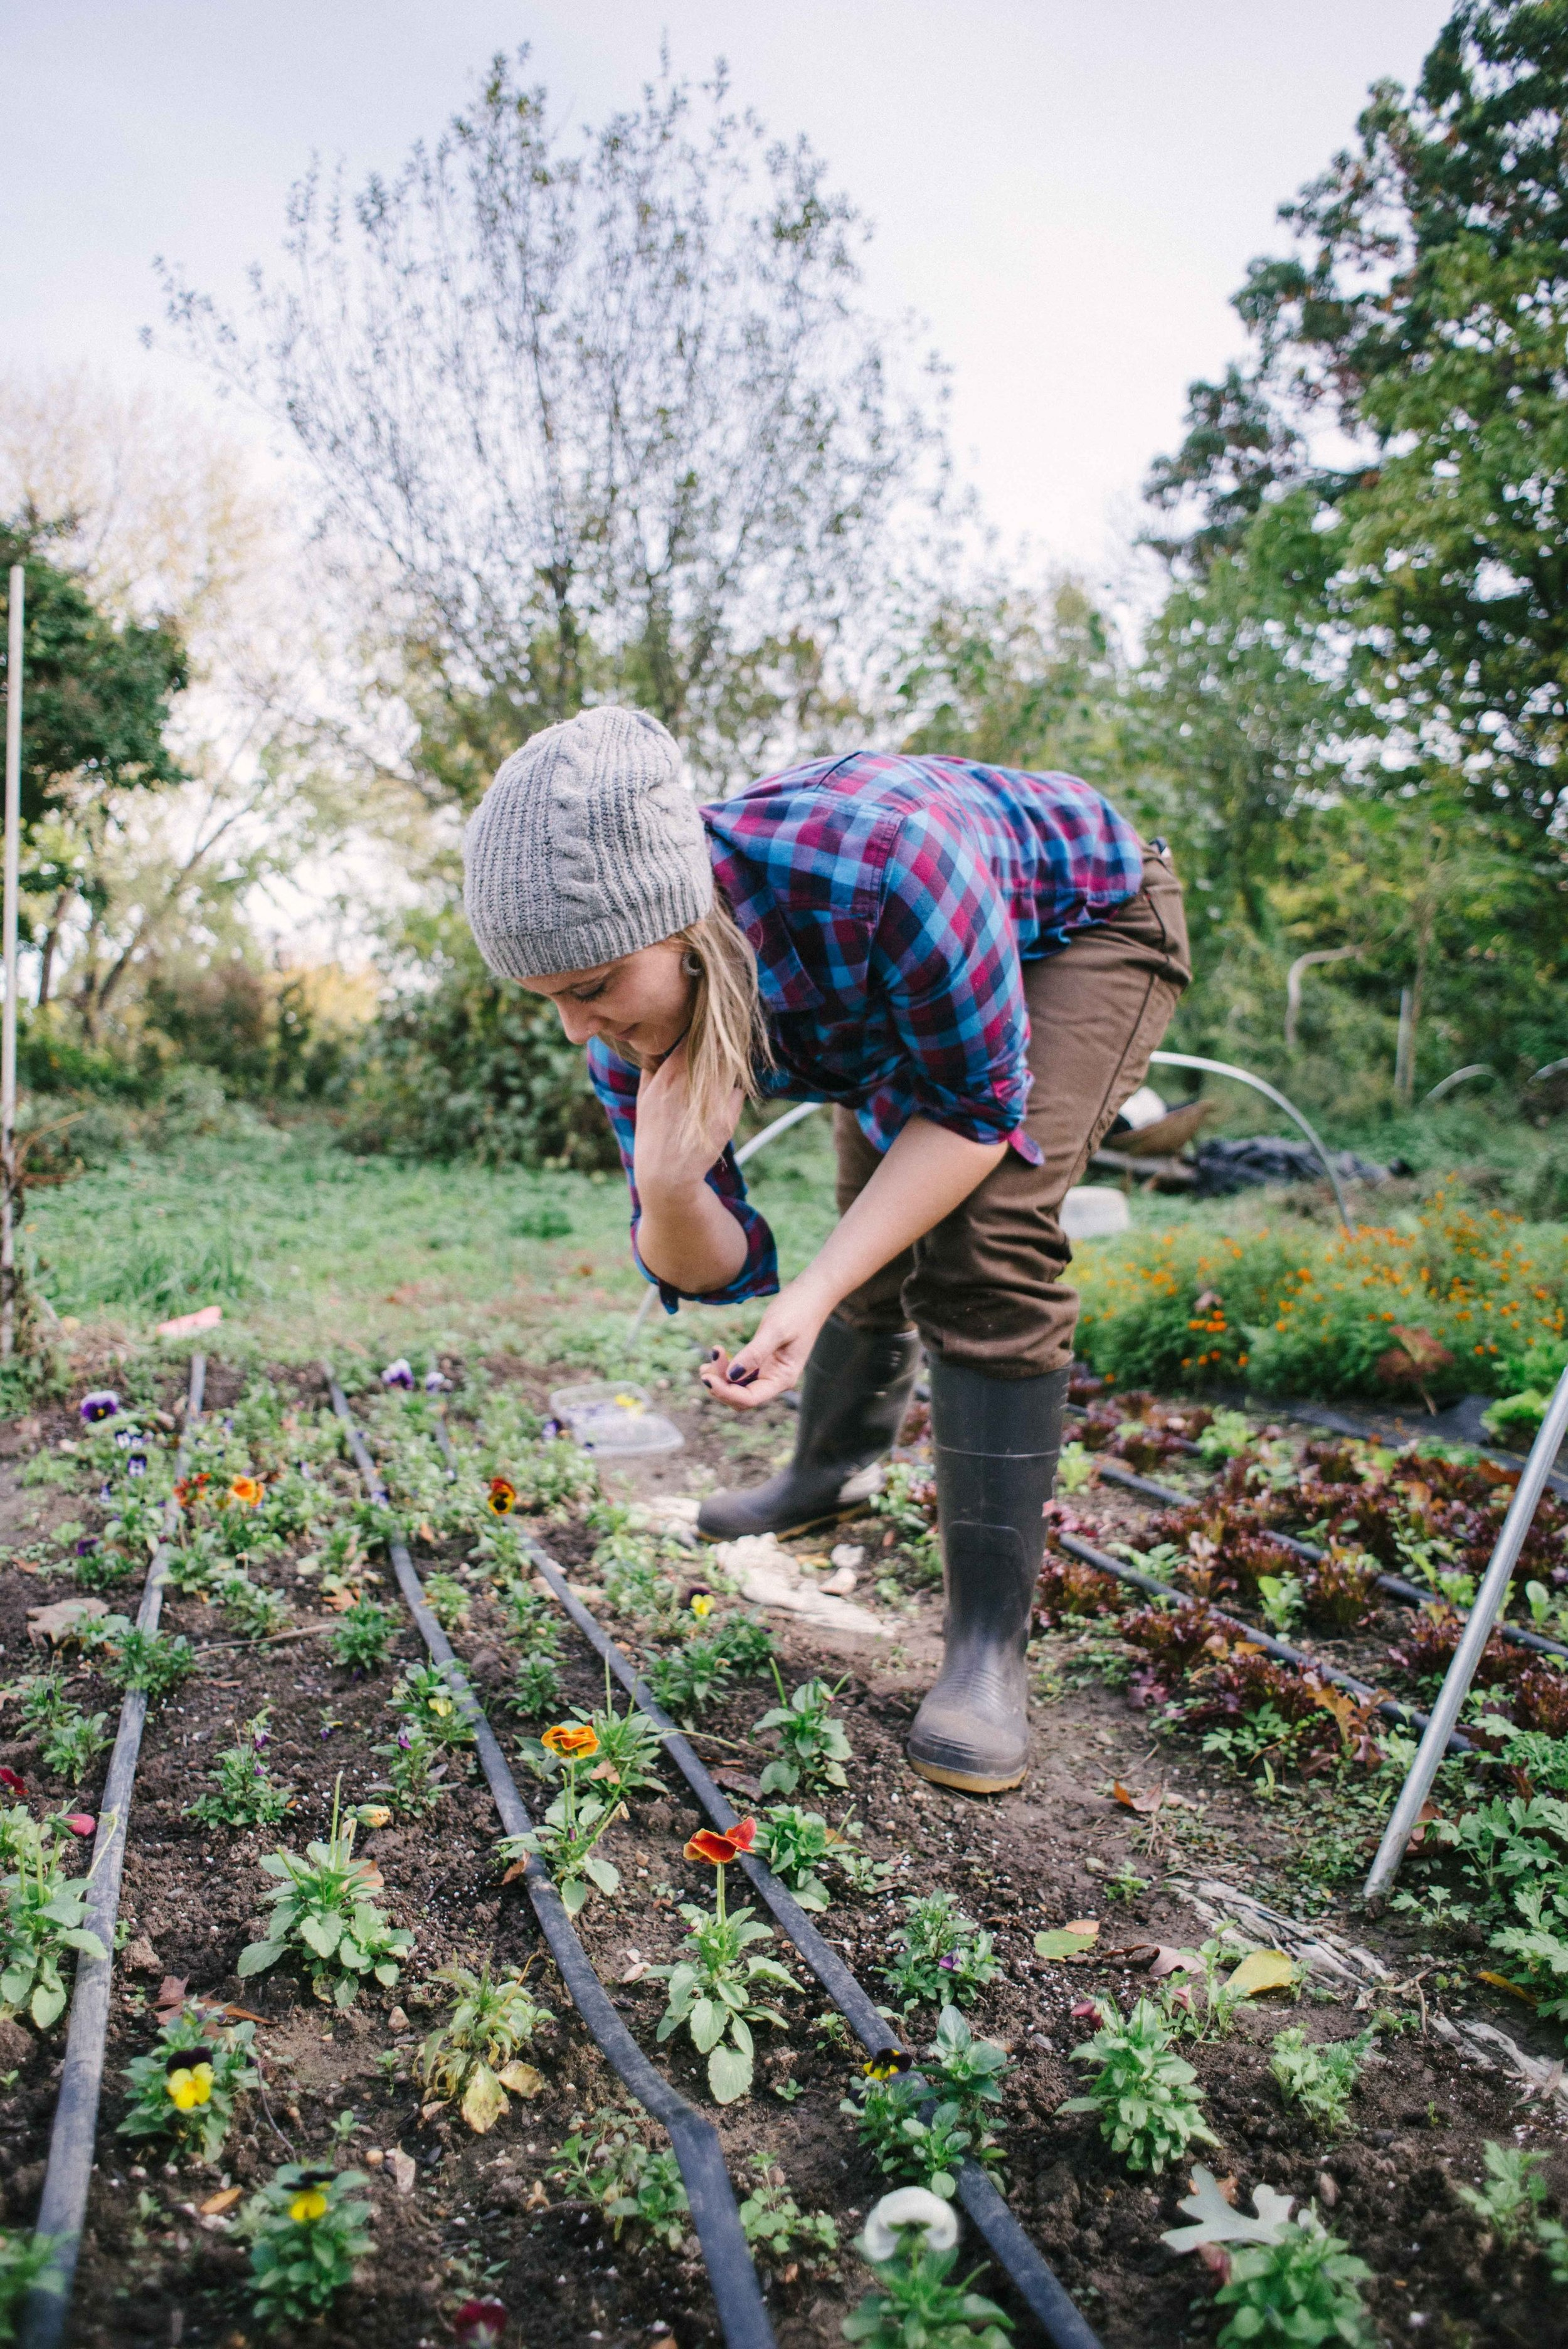 Women in Food: Mary Ackley and the Art, Science and Engineering of Urban Farming